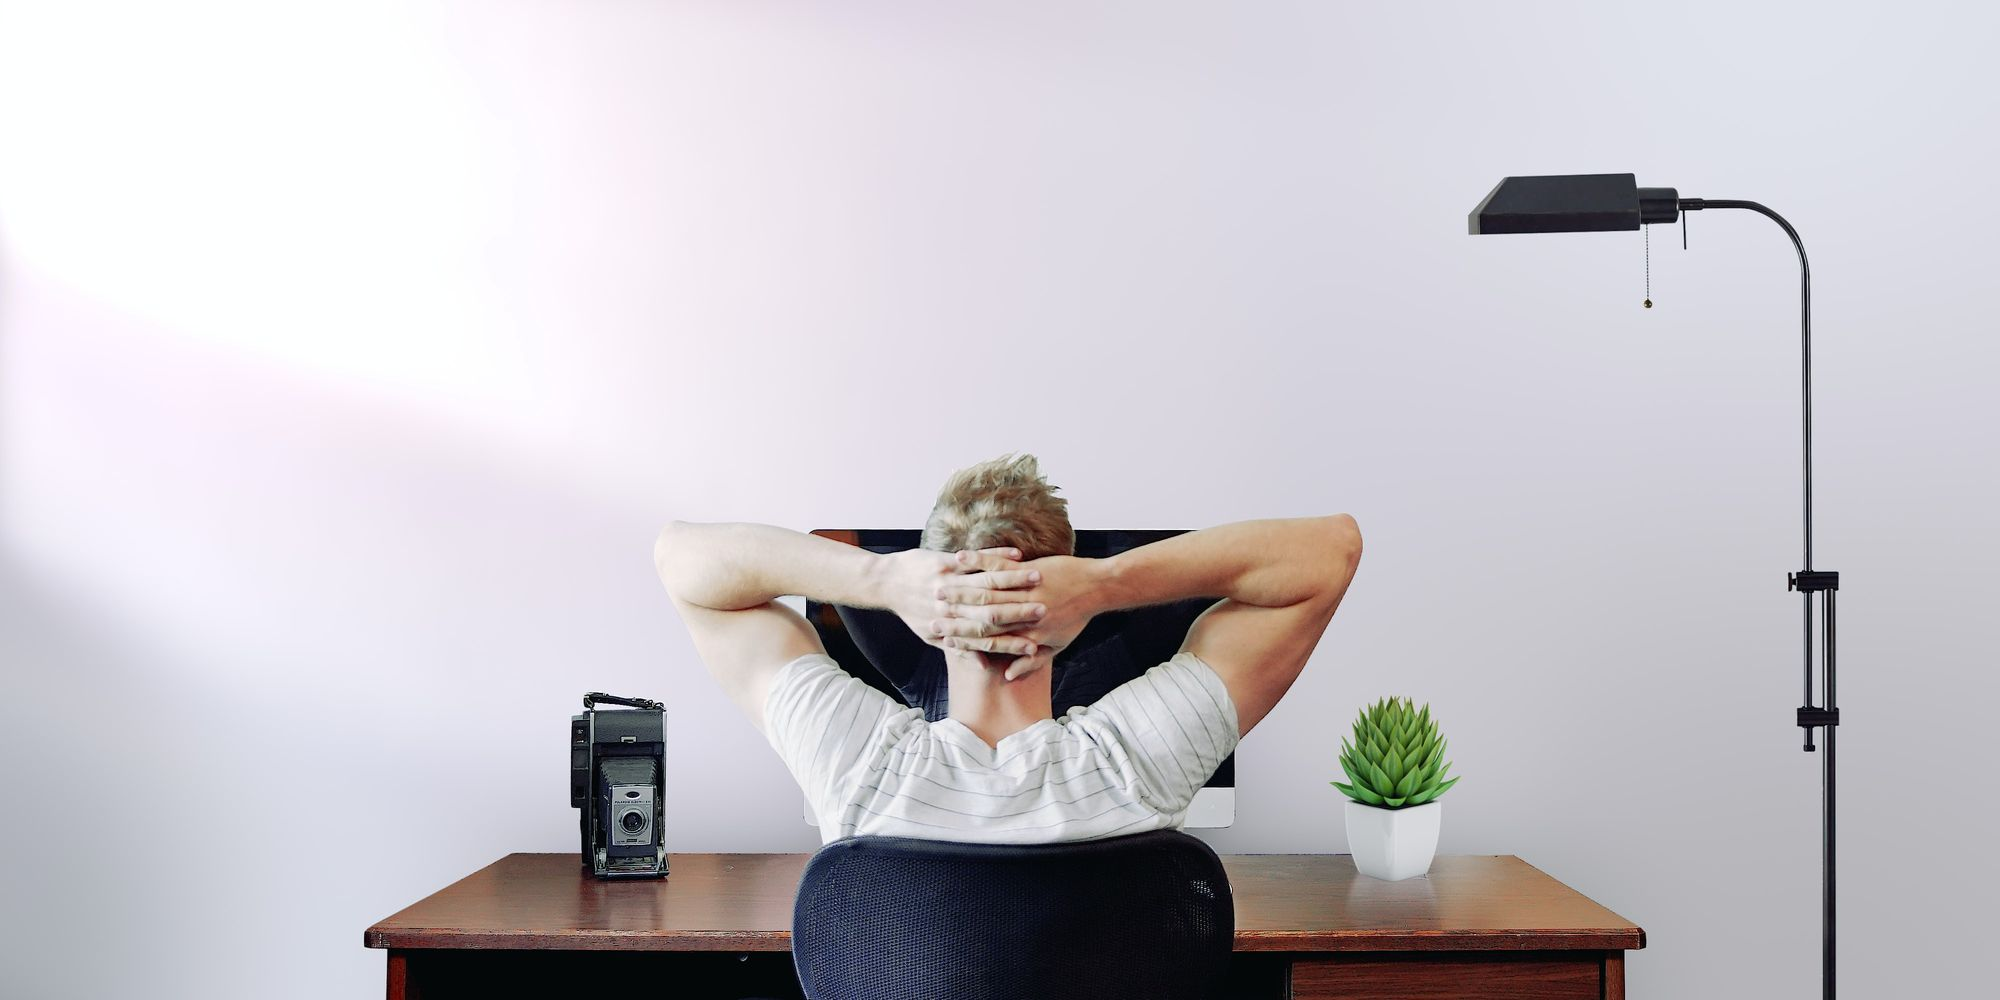 Cover Image for Working From Home is Great, but Something is Missing